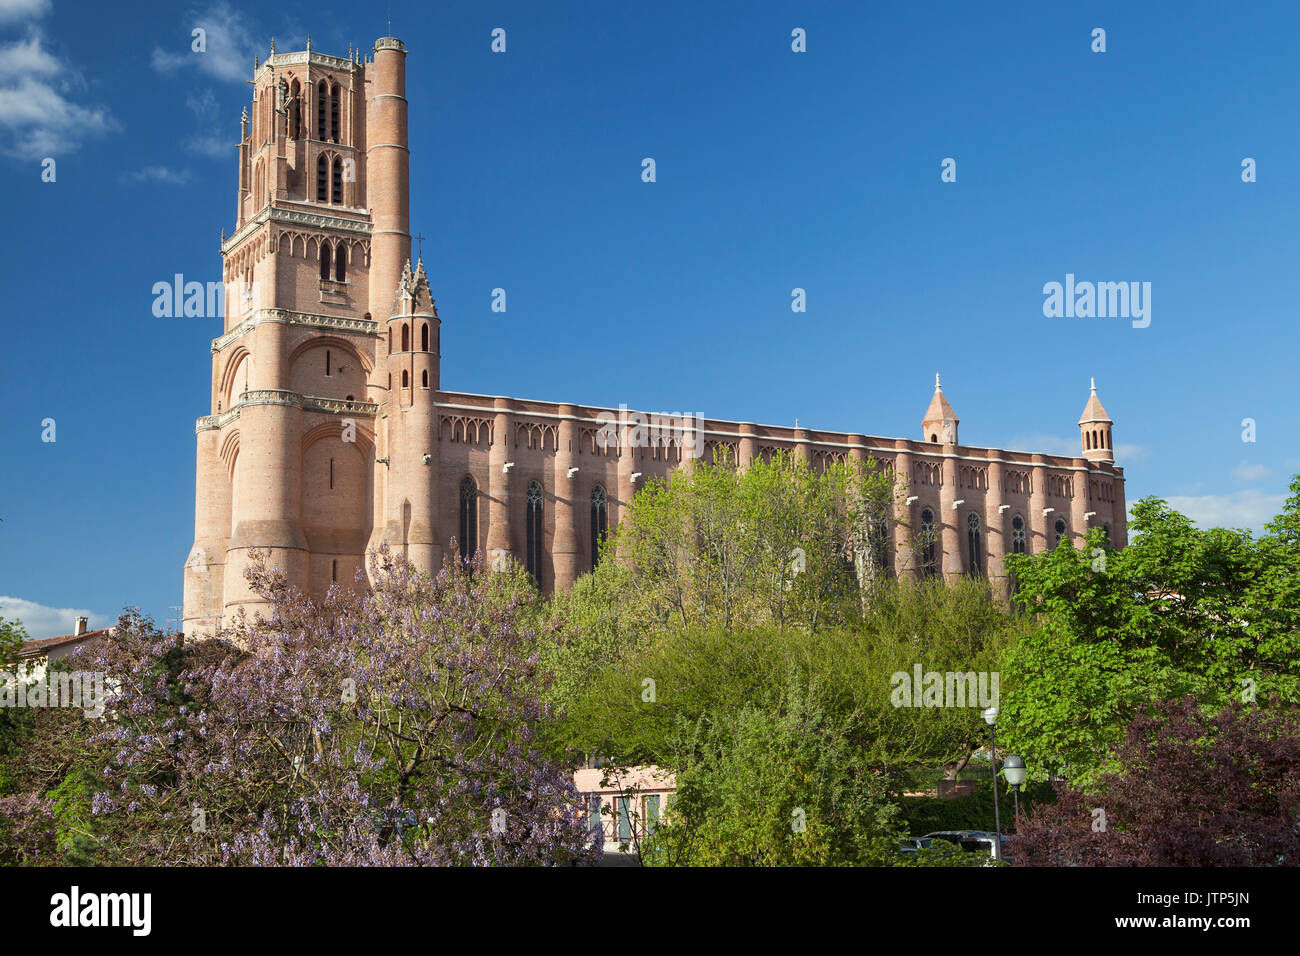 Cathedral of Albi in Occitanie, France. - Stock Image